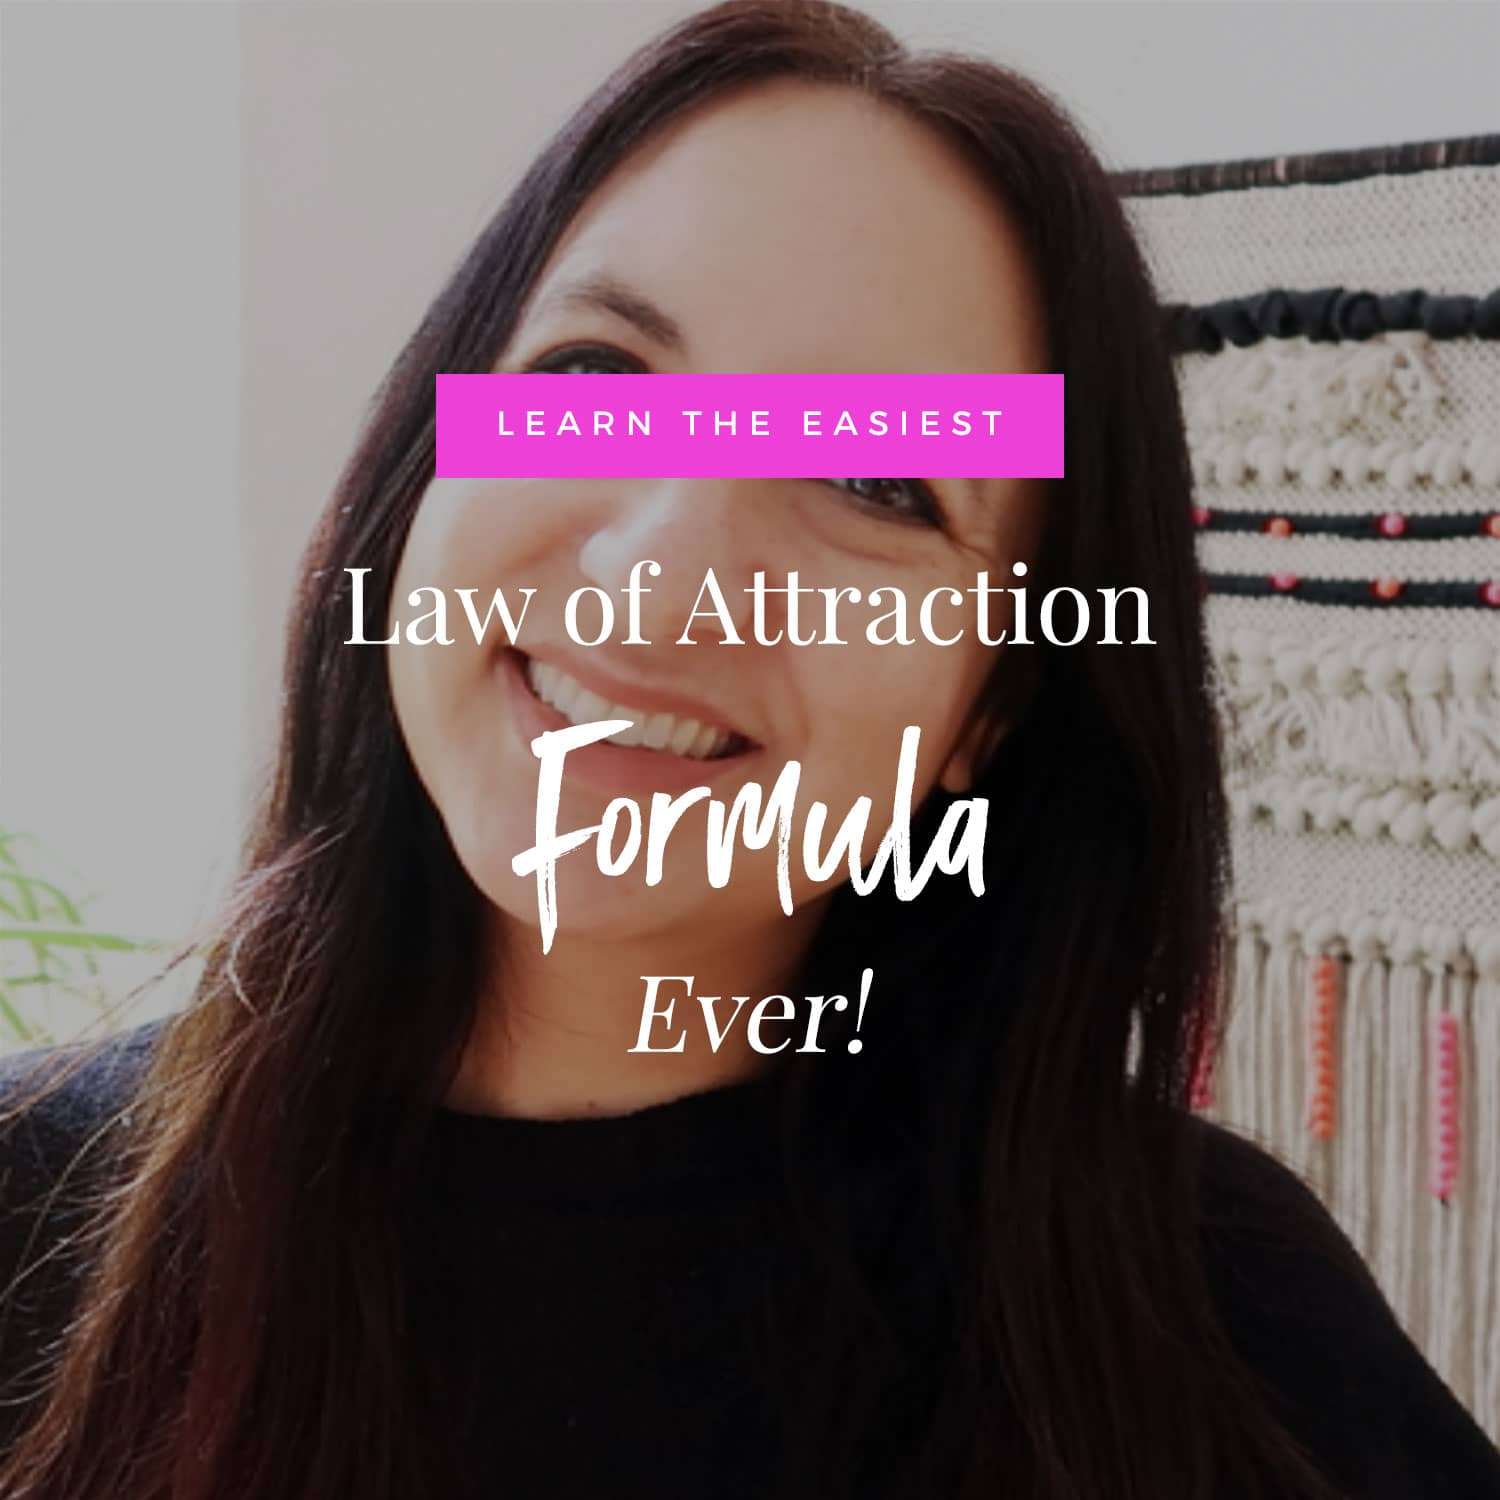 The Easiest Law Of Attraction Formula Ever